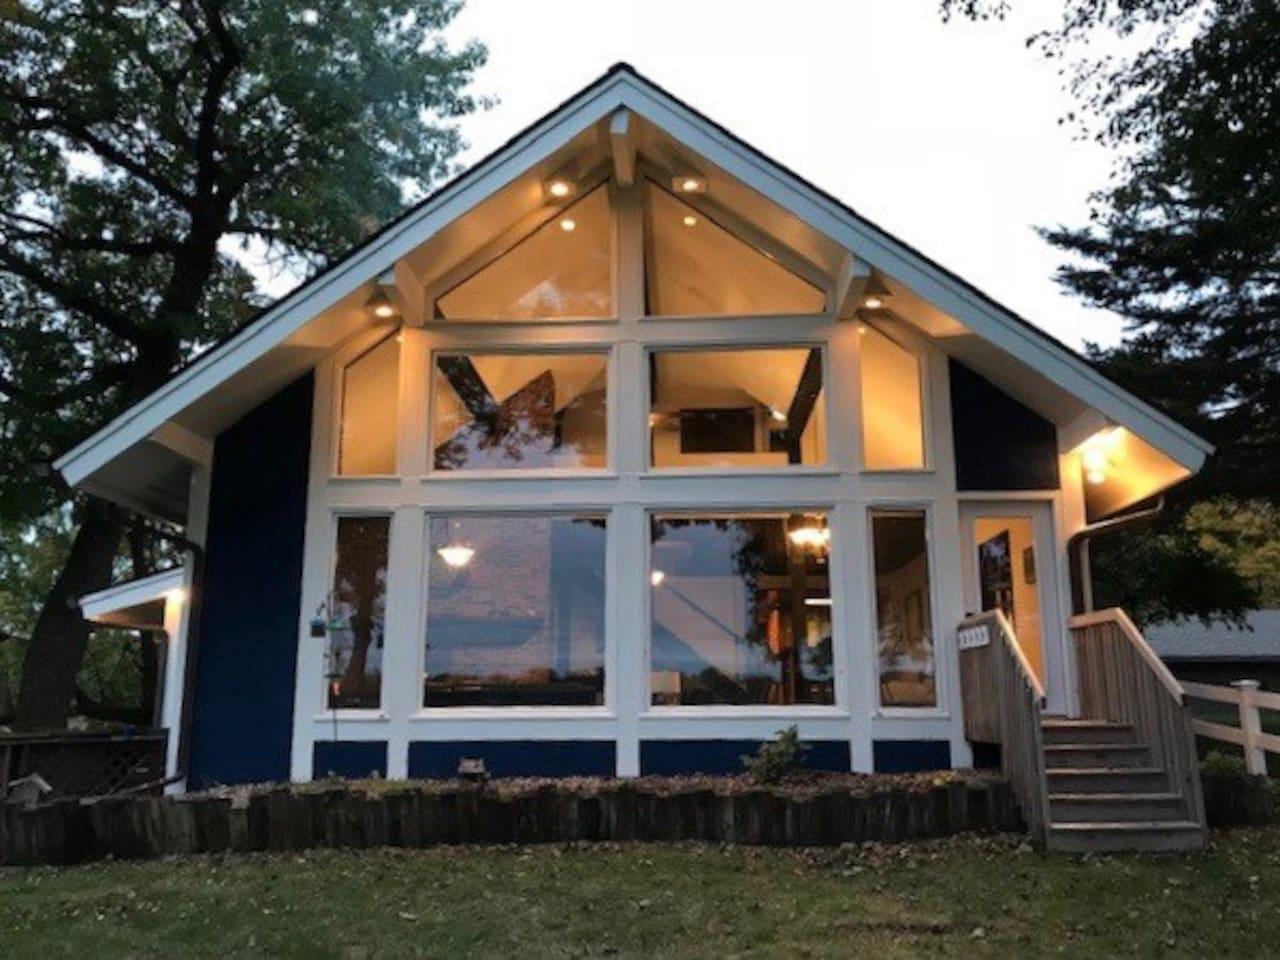 2 Story Chalet Style Loft!  Gorgeous Lake Views from both levels!